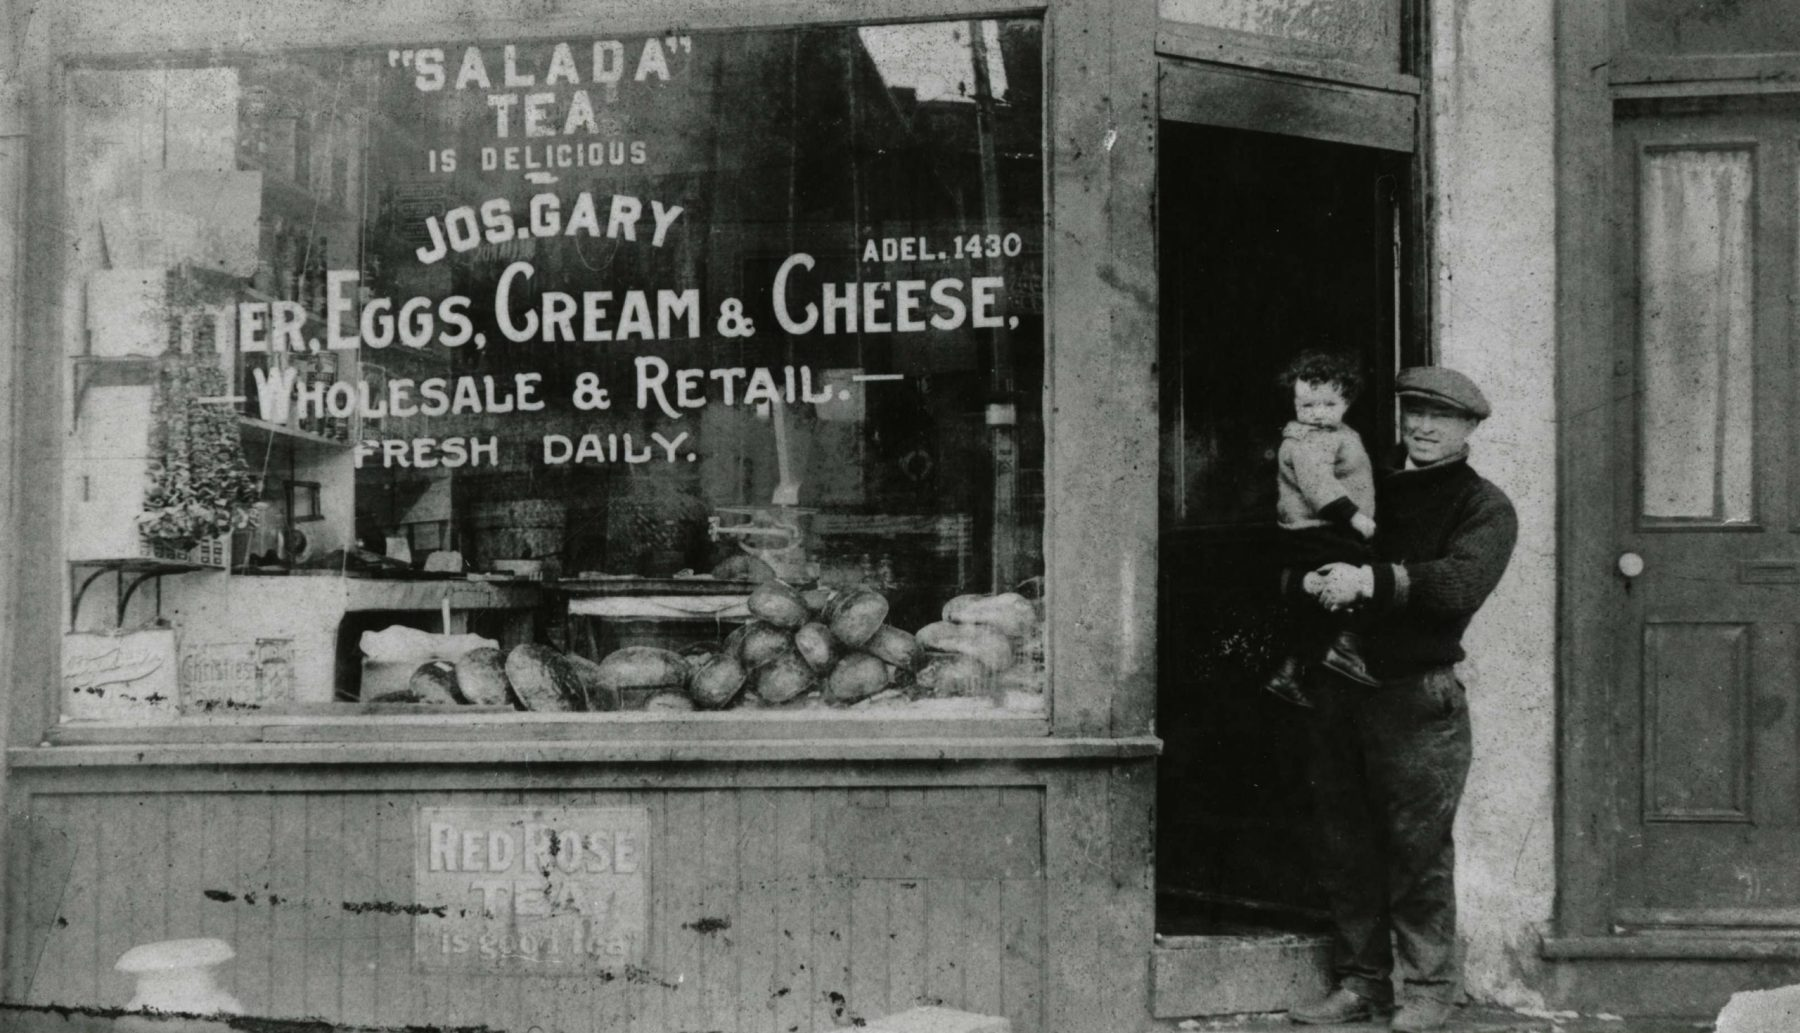 Joseph Gary in front of his grocery store at 136 Elizabeth Street in the Ward, ca. 1925.  The area was home to many retail shops, synagogues, and Toronto's Old City Hall. The neighbourhood was eventually levelled to make way for hospitals, Toronto's New City Hall, and Nathan Phillips Square.   OJA, item 1542.